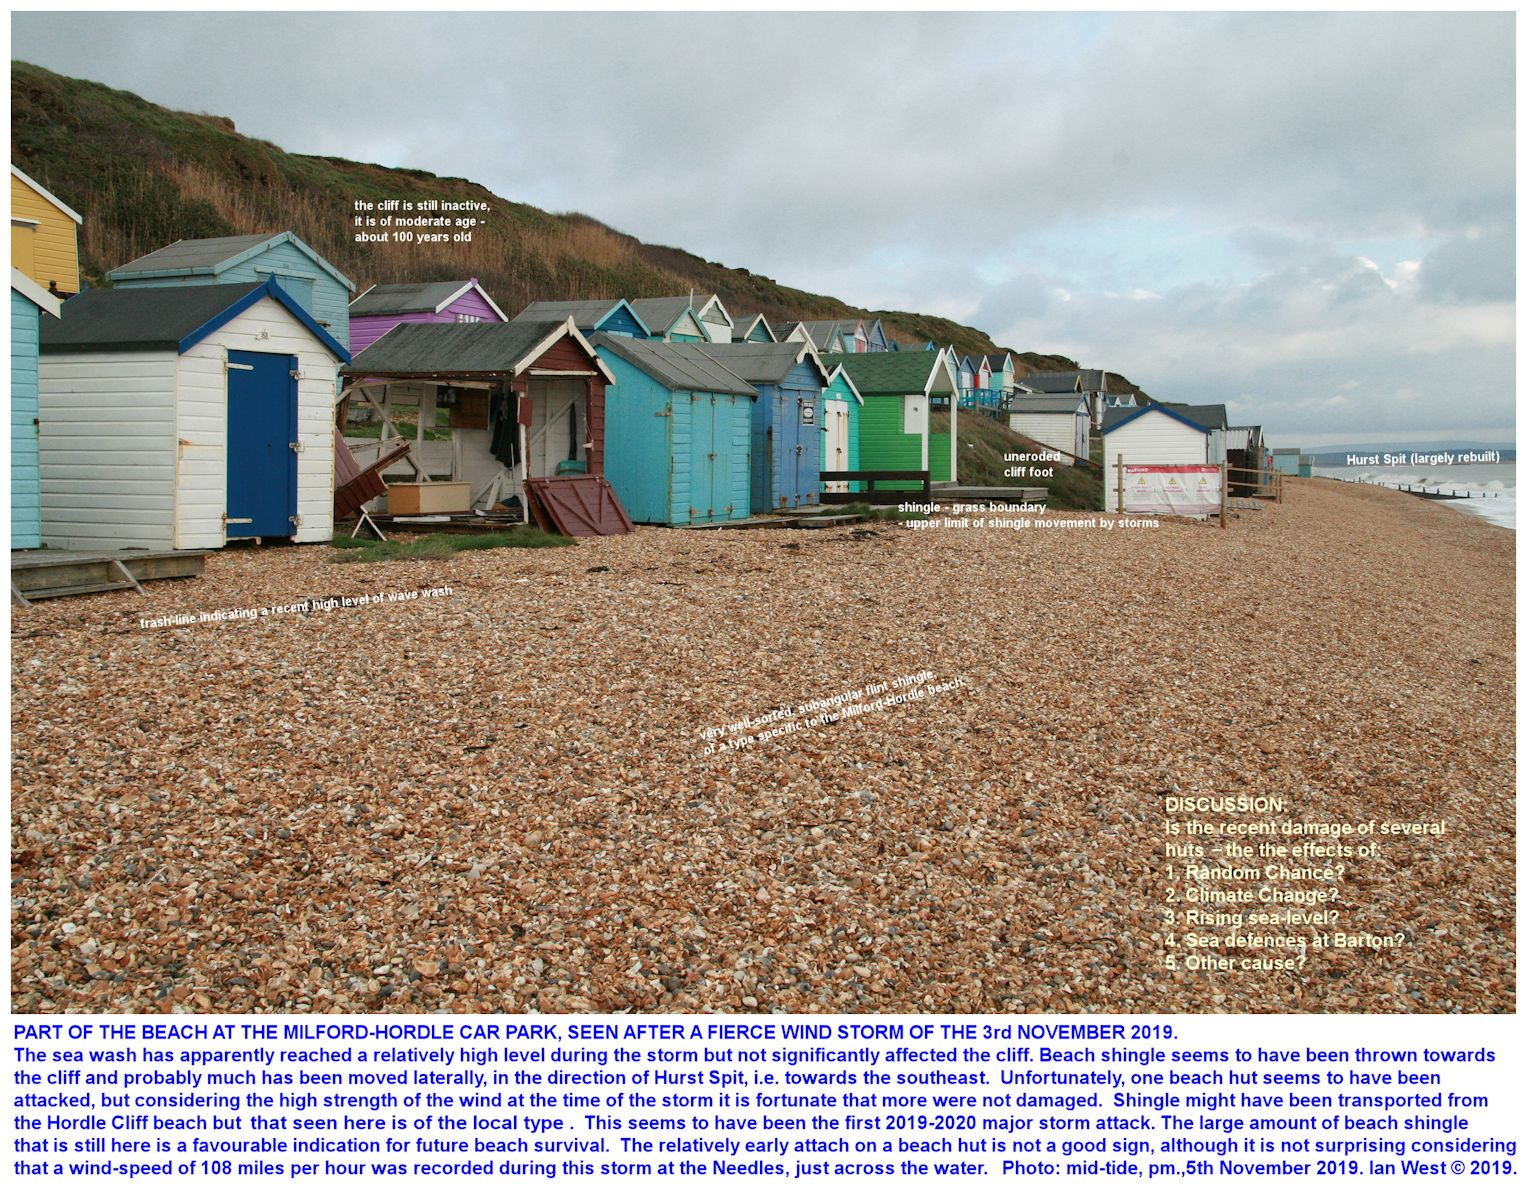 Beach huts, with one damaged by a storm of 3rd November 2019, as seen on the shingle beach near Milford-on-Sea, Hordle Cliff (West) car park, 5th November 2019